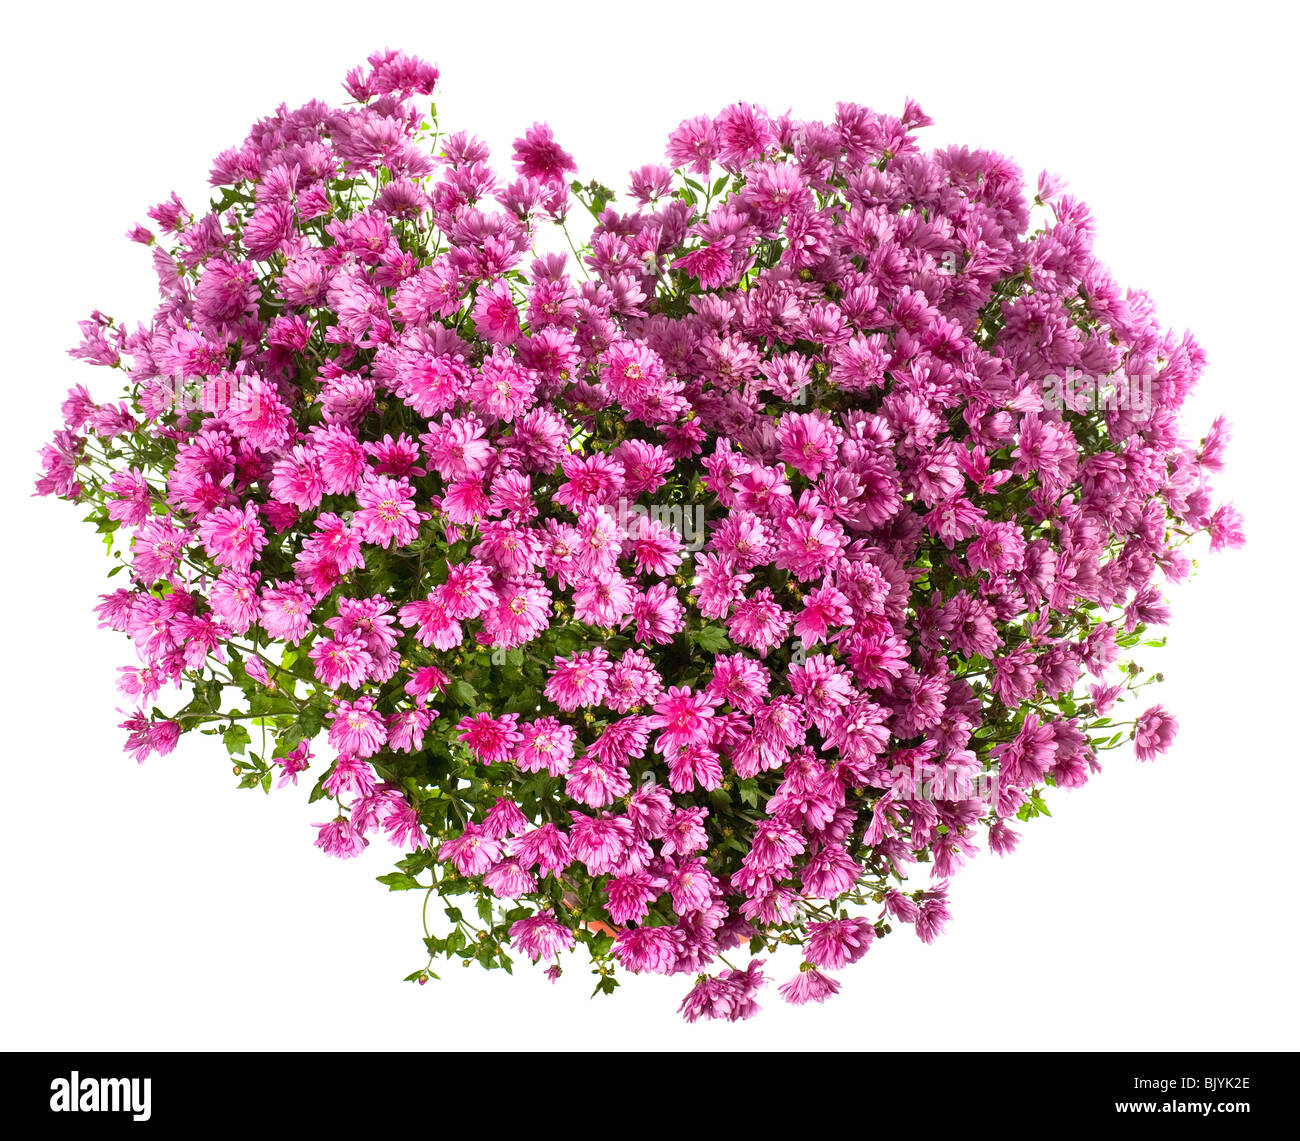 Potted magenta chrysanthemums bush in heart shape (isolated on white background) - Stock Image